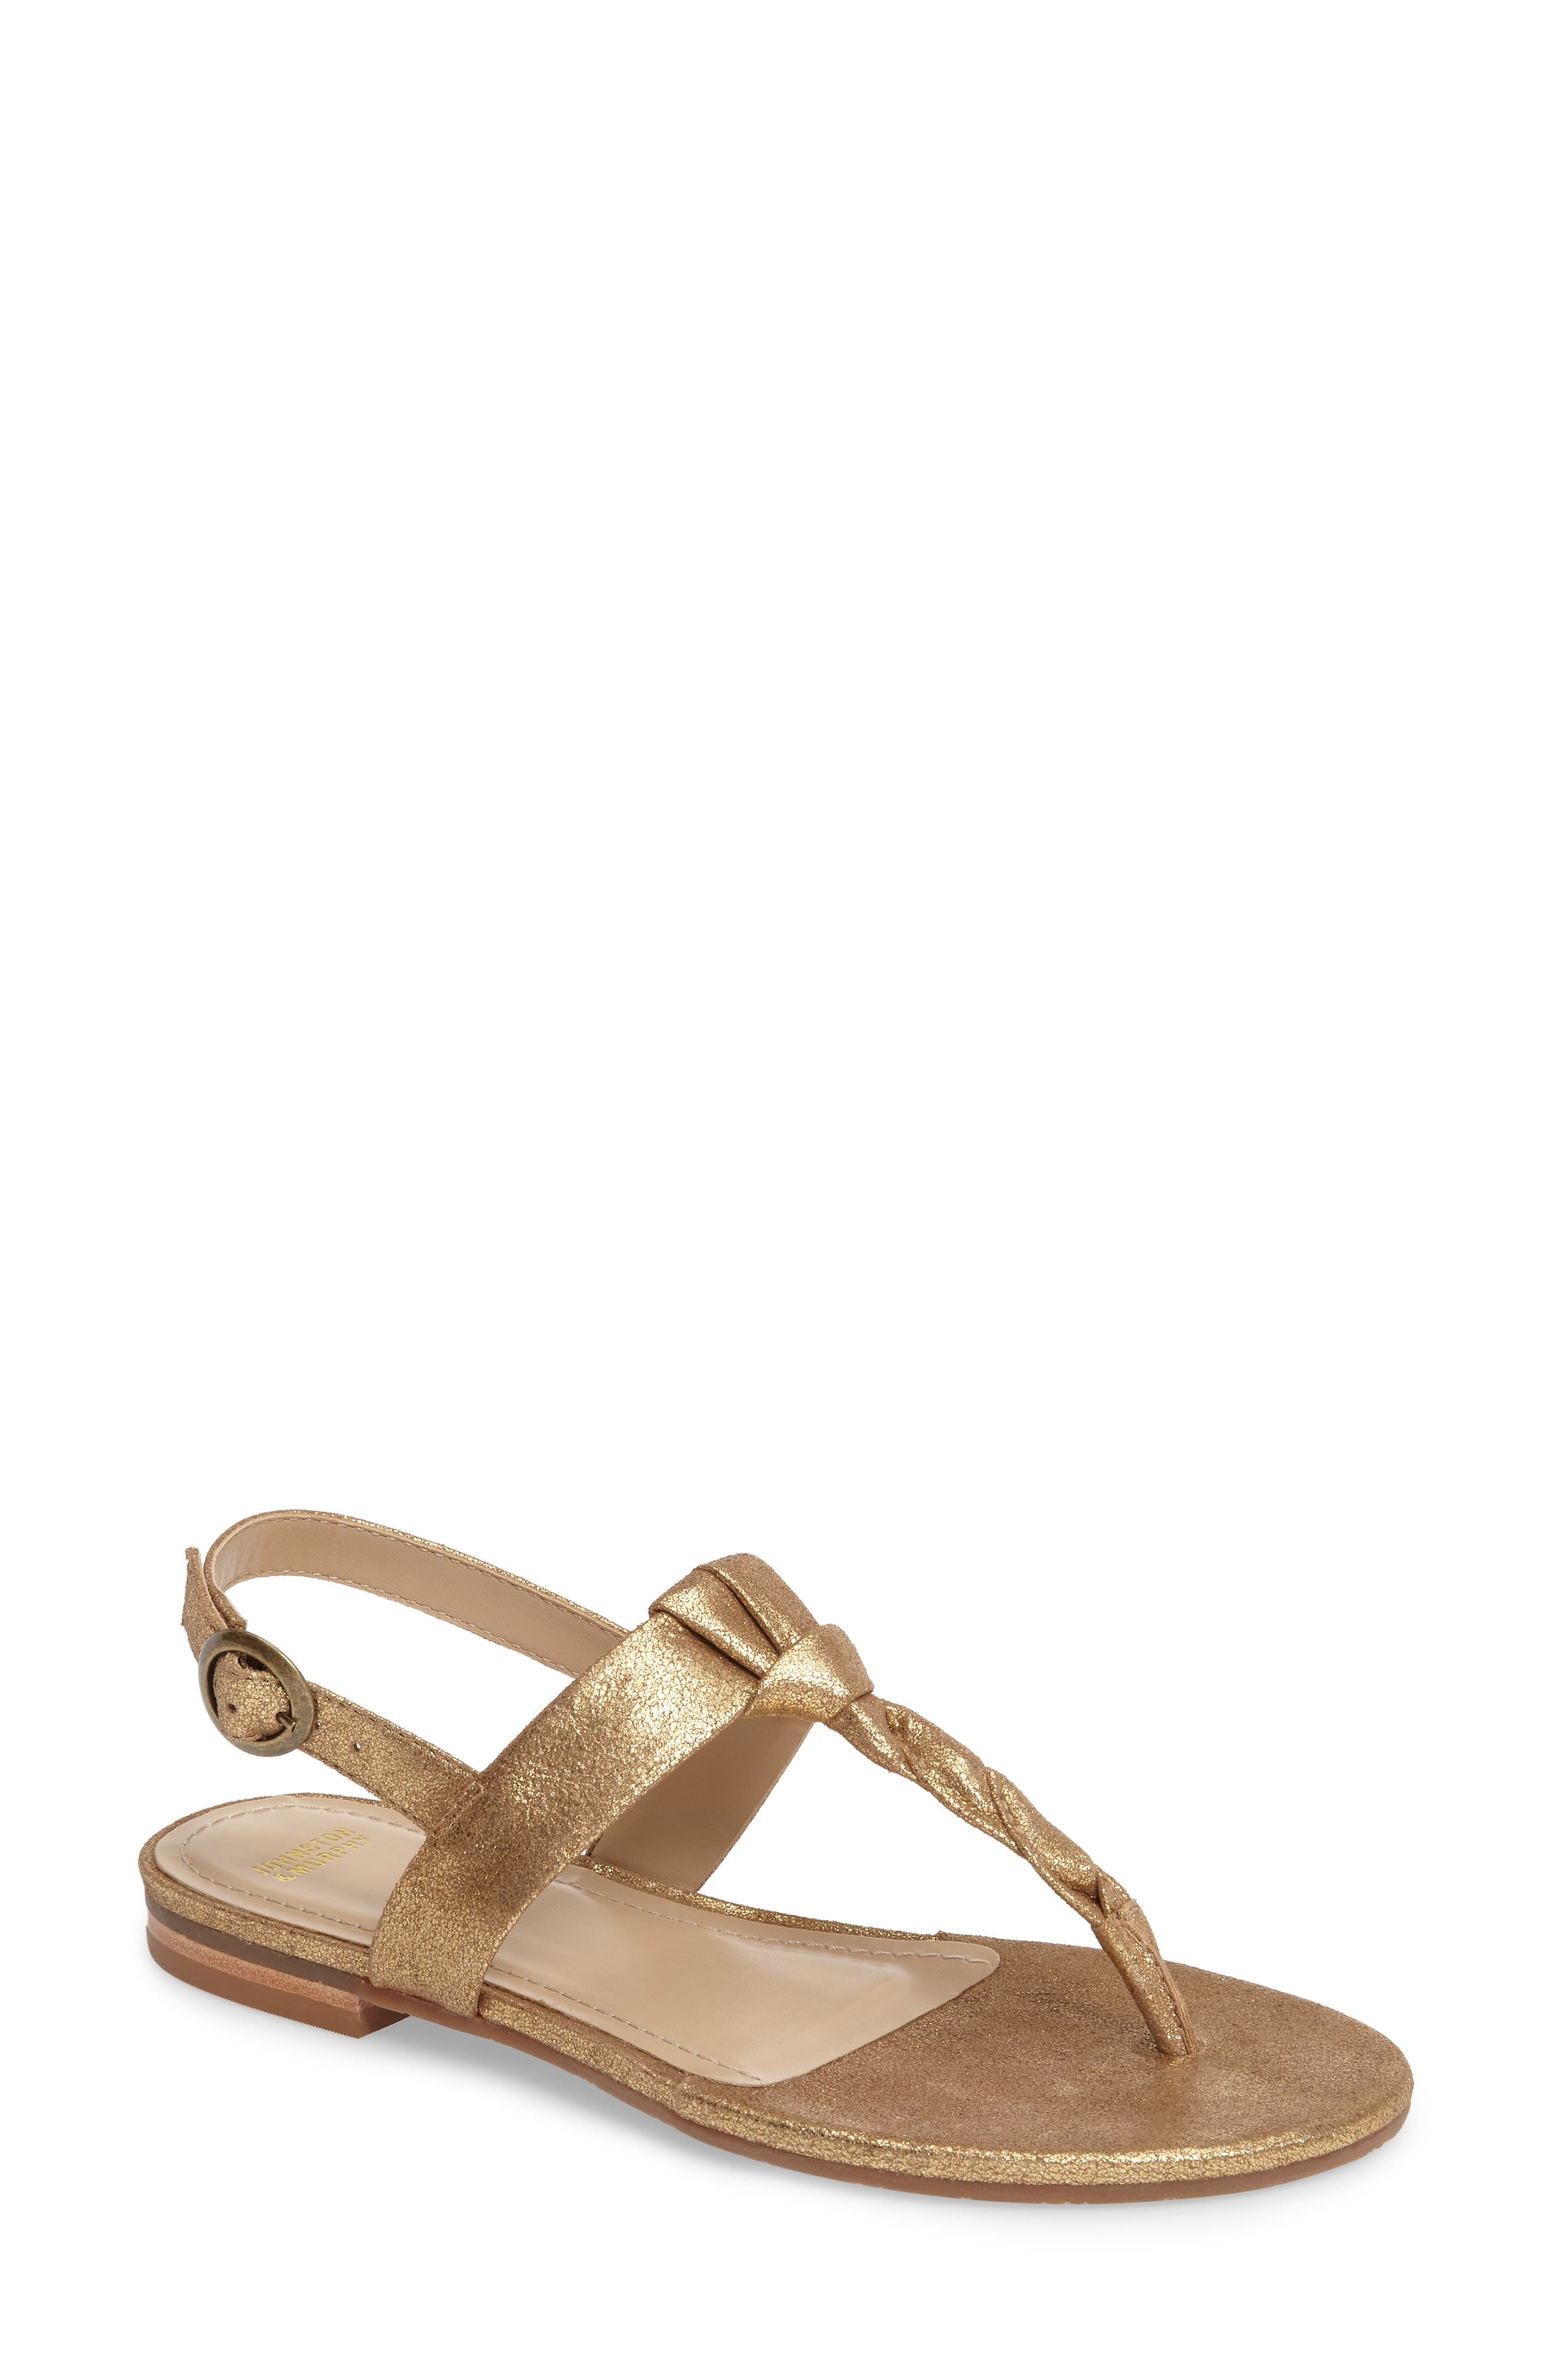 Alternate Image 1 Selected - Johnston & Murphy Holly Twisted T-Strap Sandal (Women)